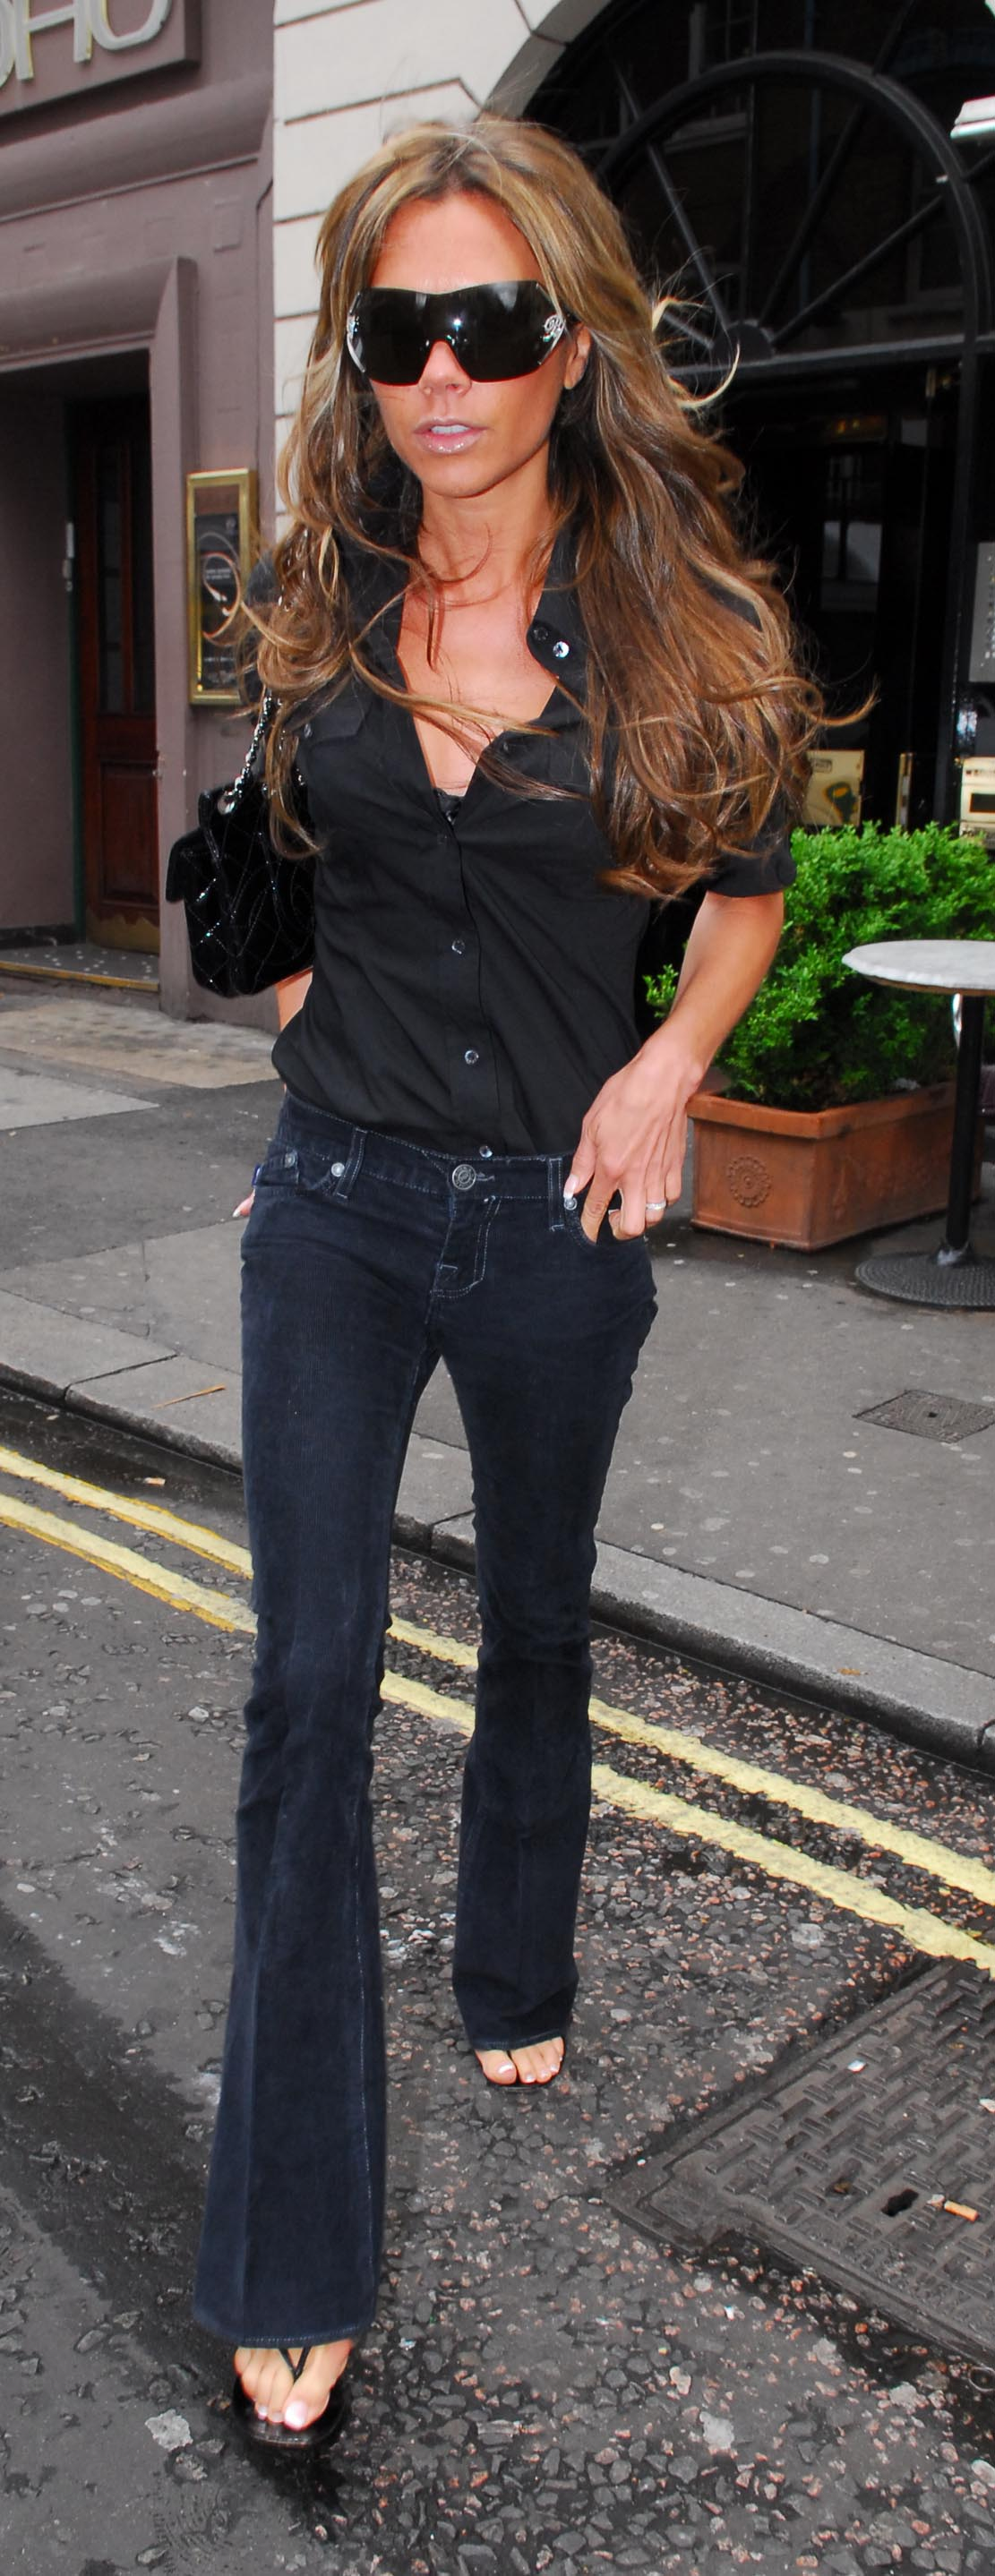 93983_Victoria_Beckham_out_and_about_in_London_14.jpg